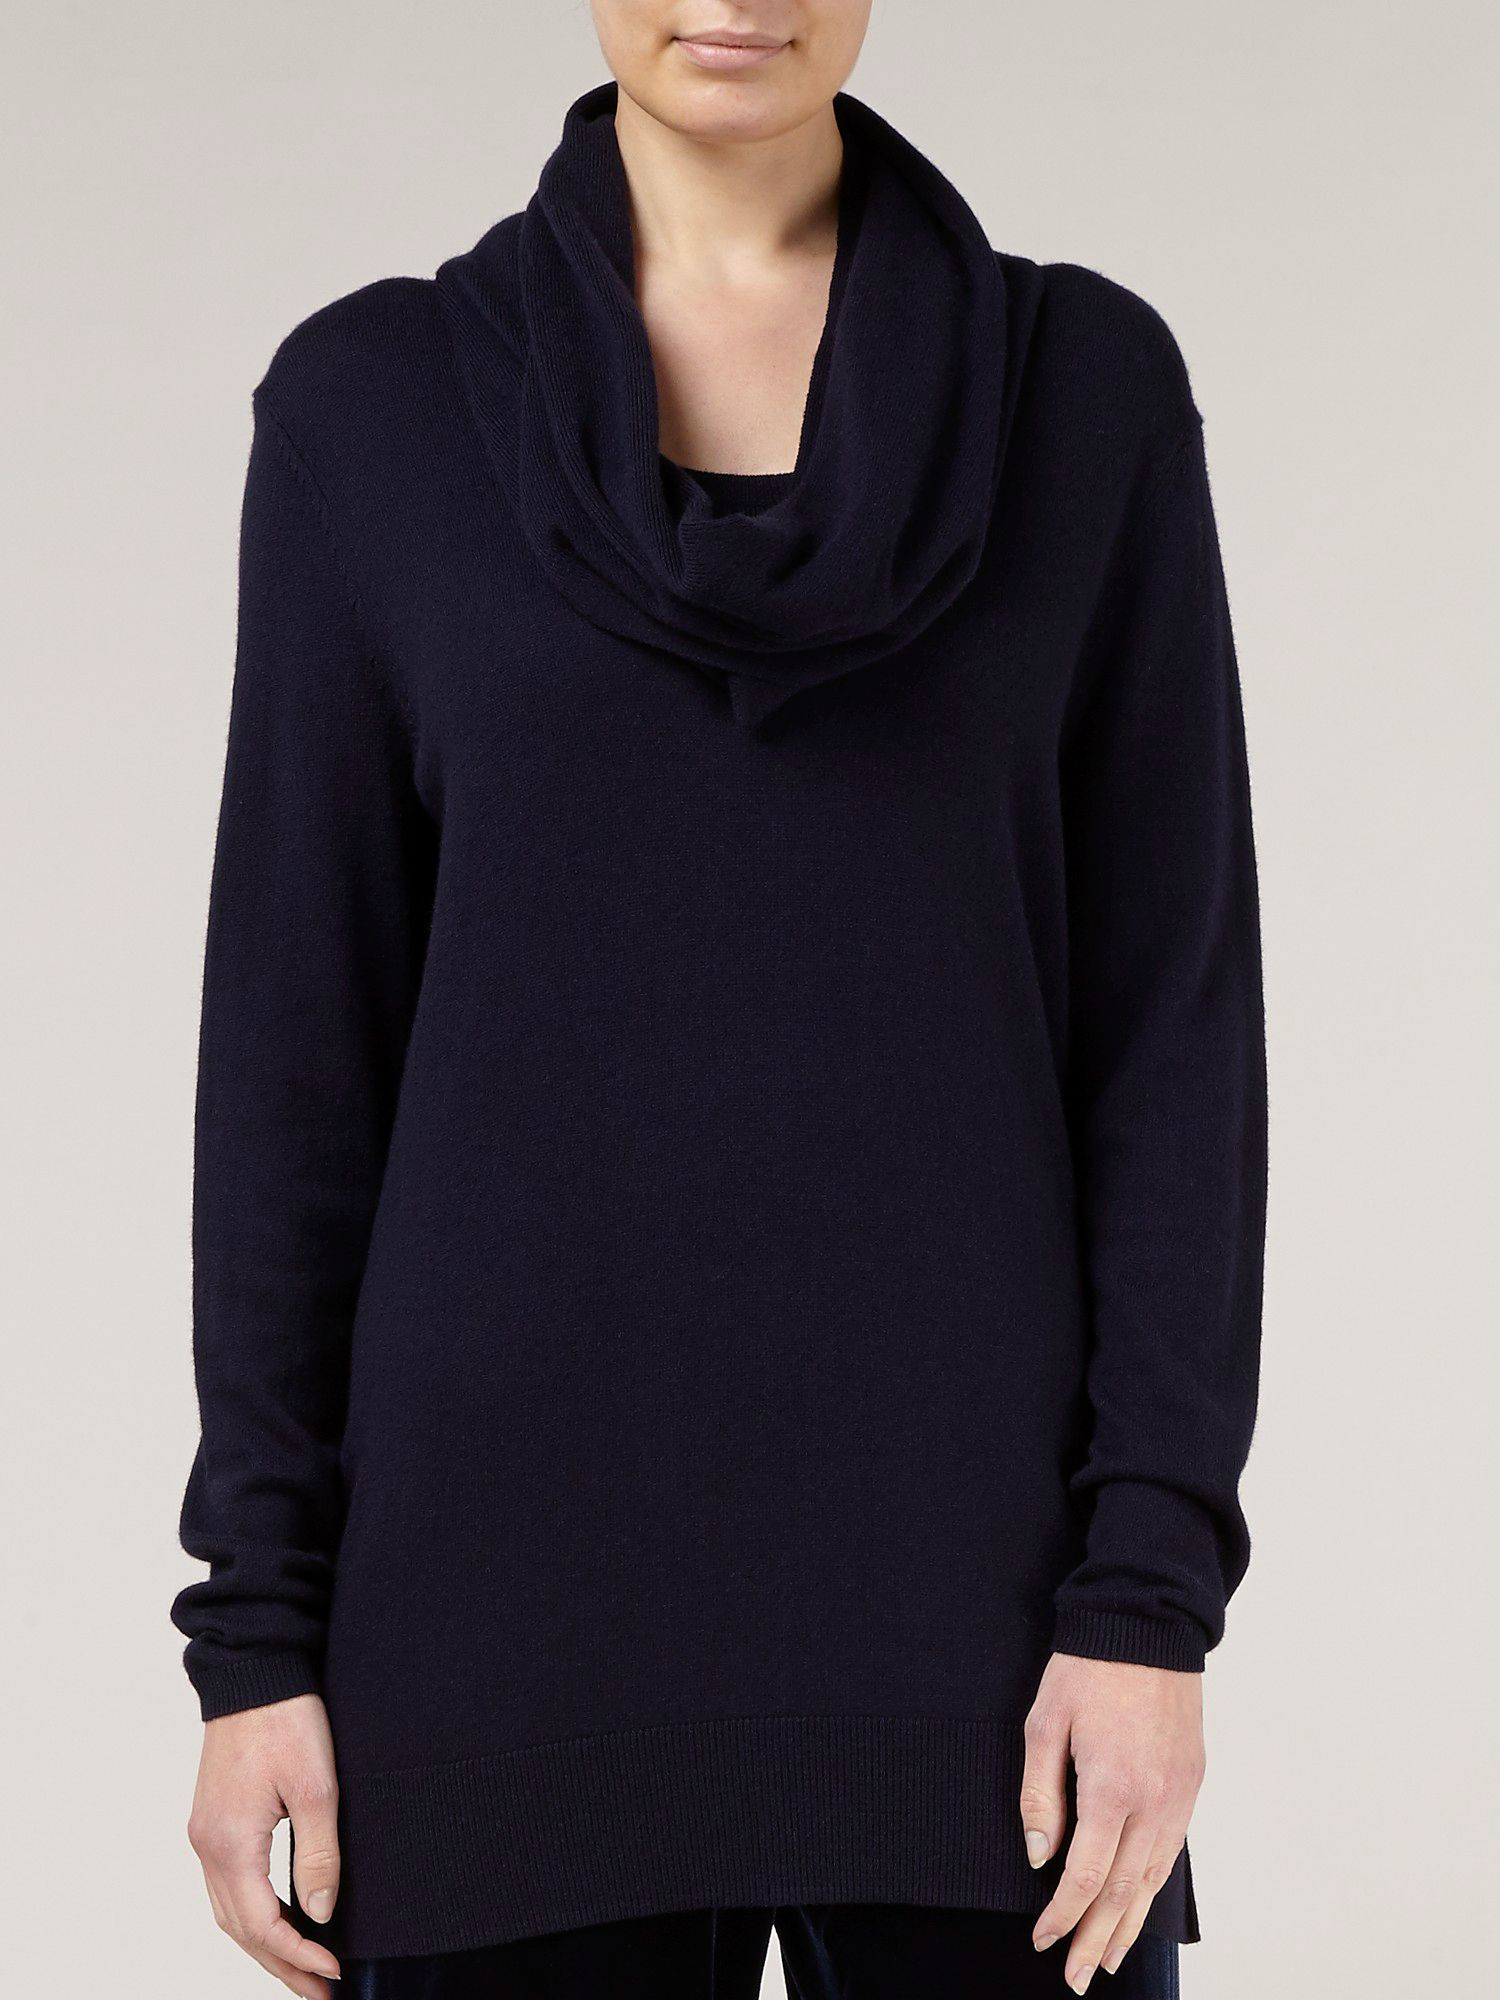 Navy knitted snood jumper